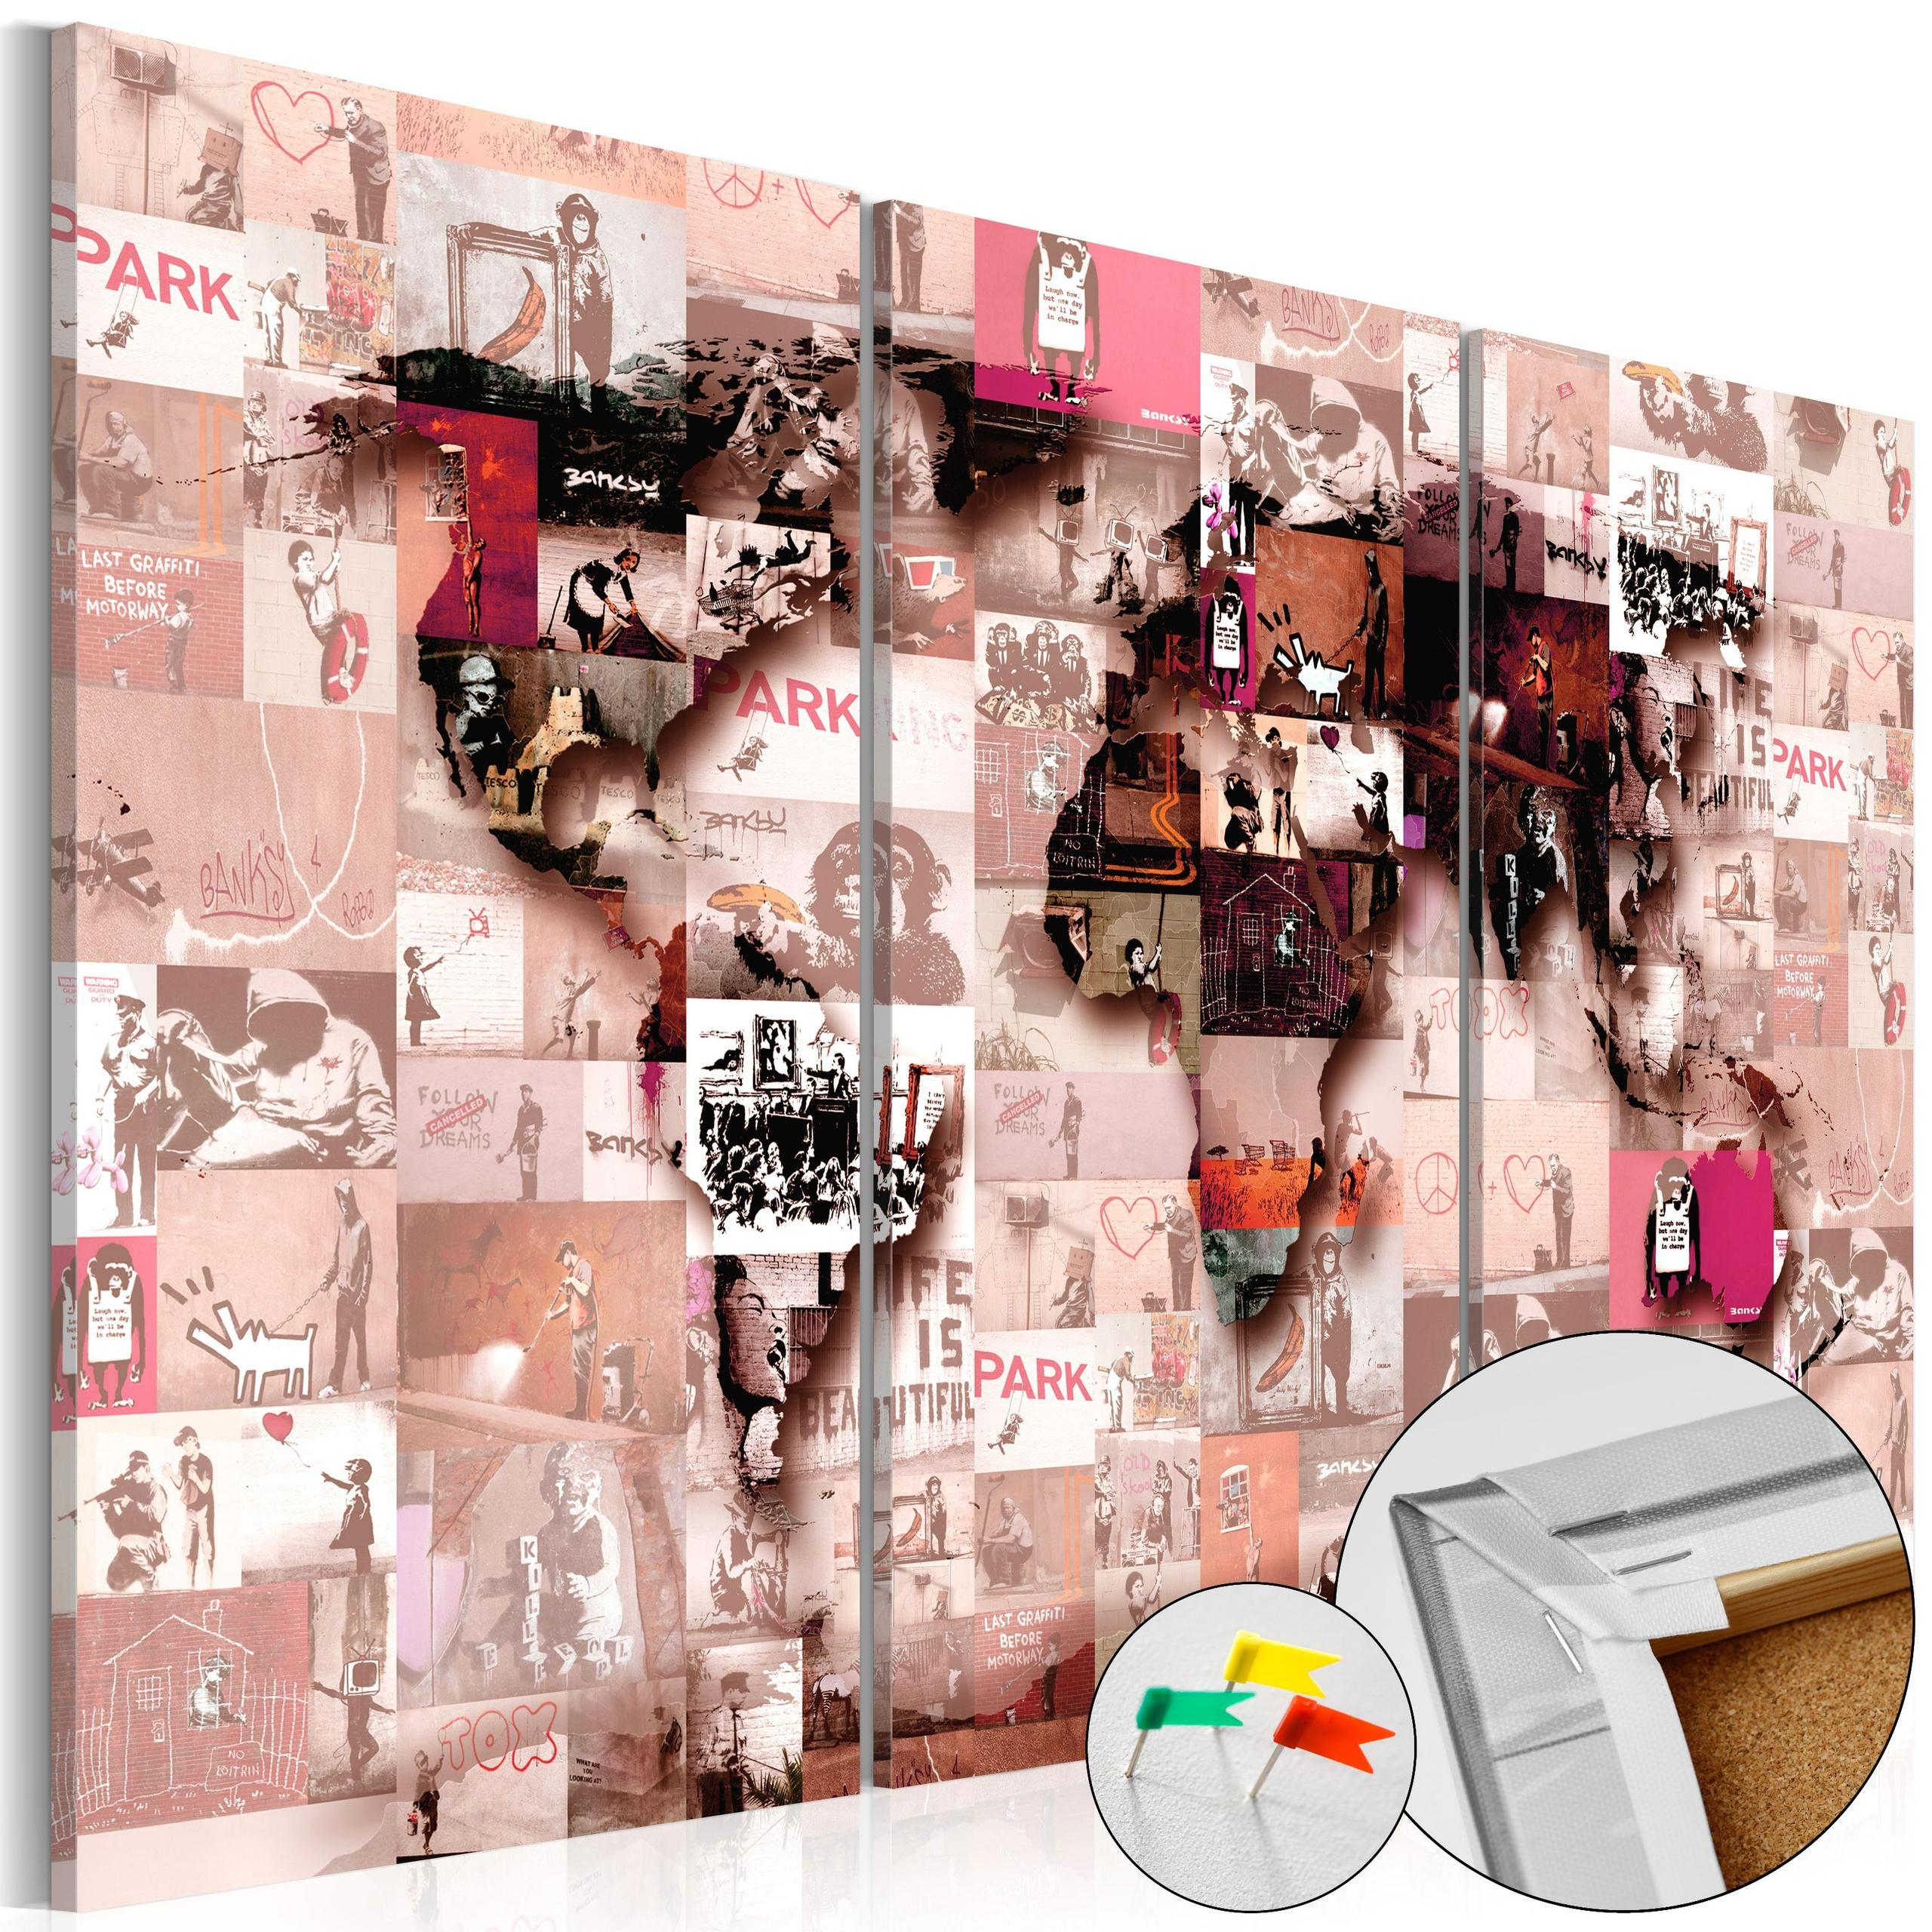 Quadro Di Sughero - Banksy Graffiti Collage [Cork Map] 90x60cm Erroi